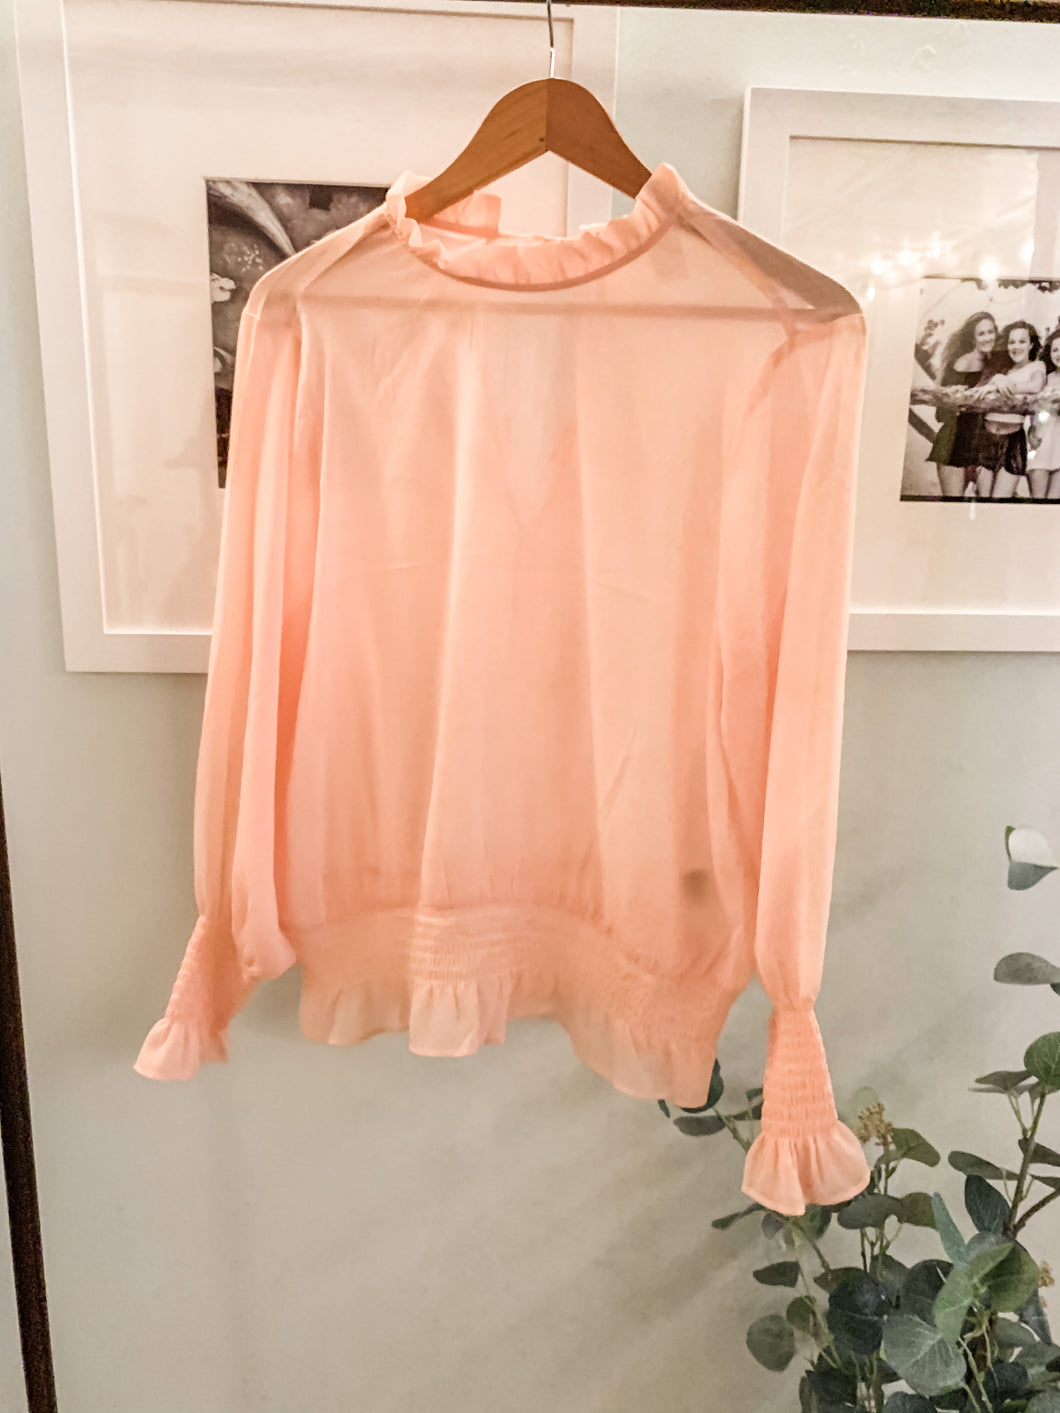 Light pink sheer top.  Pair with a bralette or undershirt! Dress up or great for a beach day!